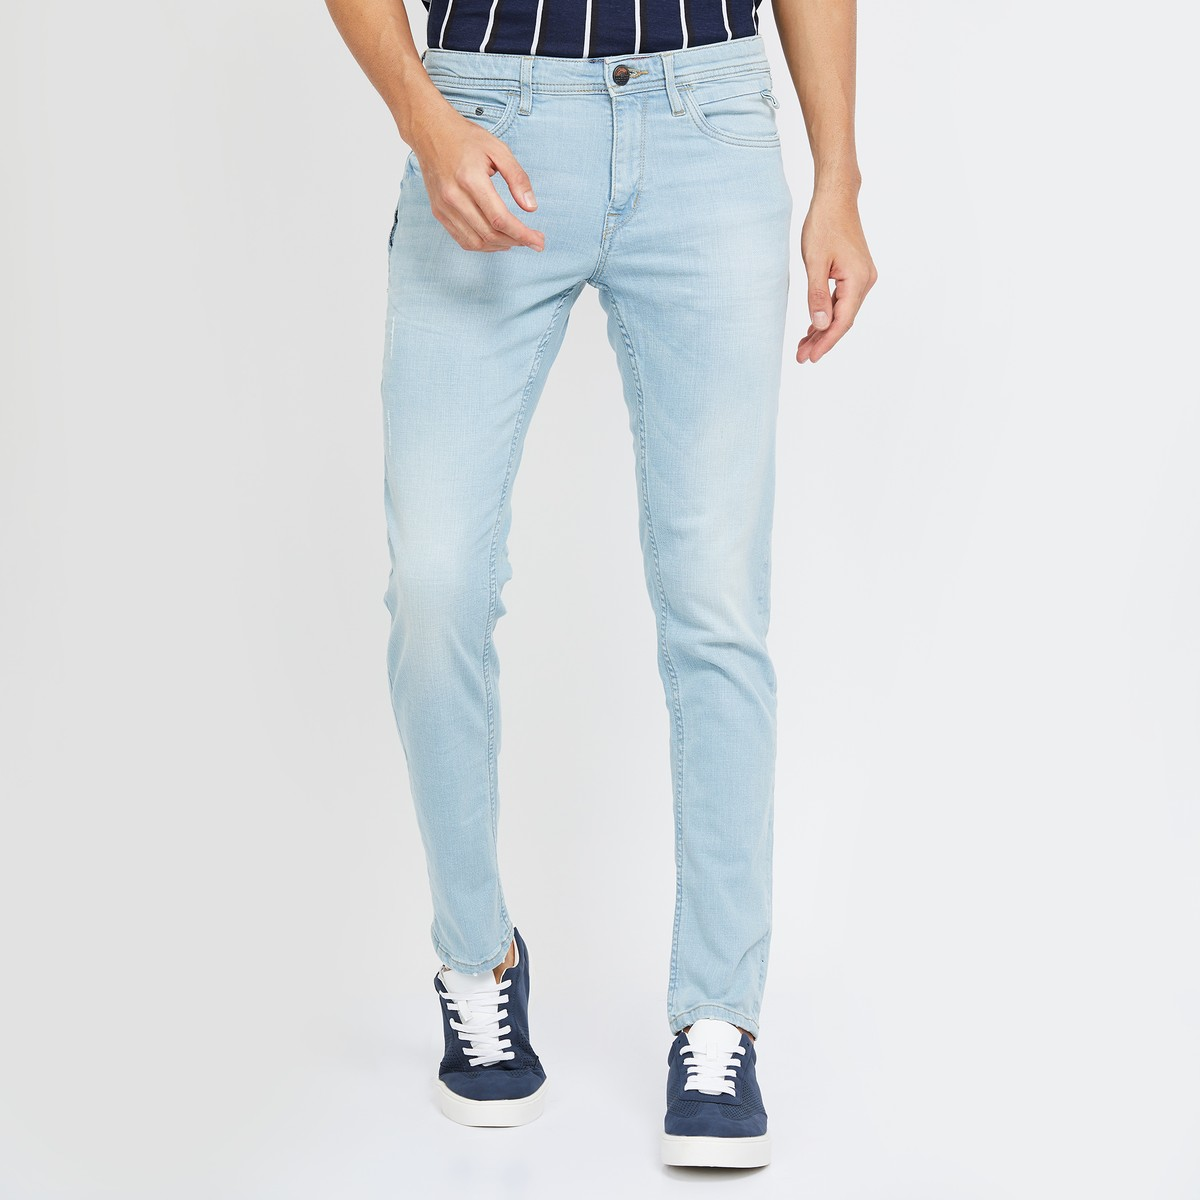 Sky blue washed jeans